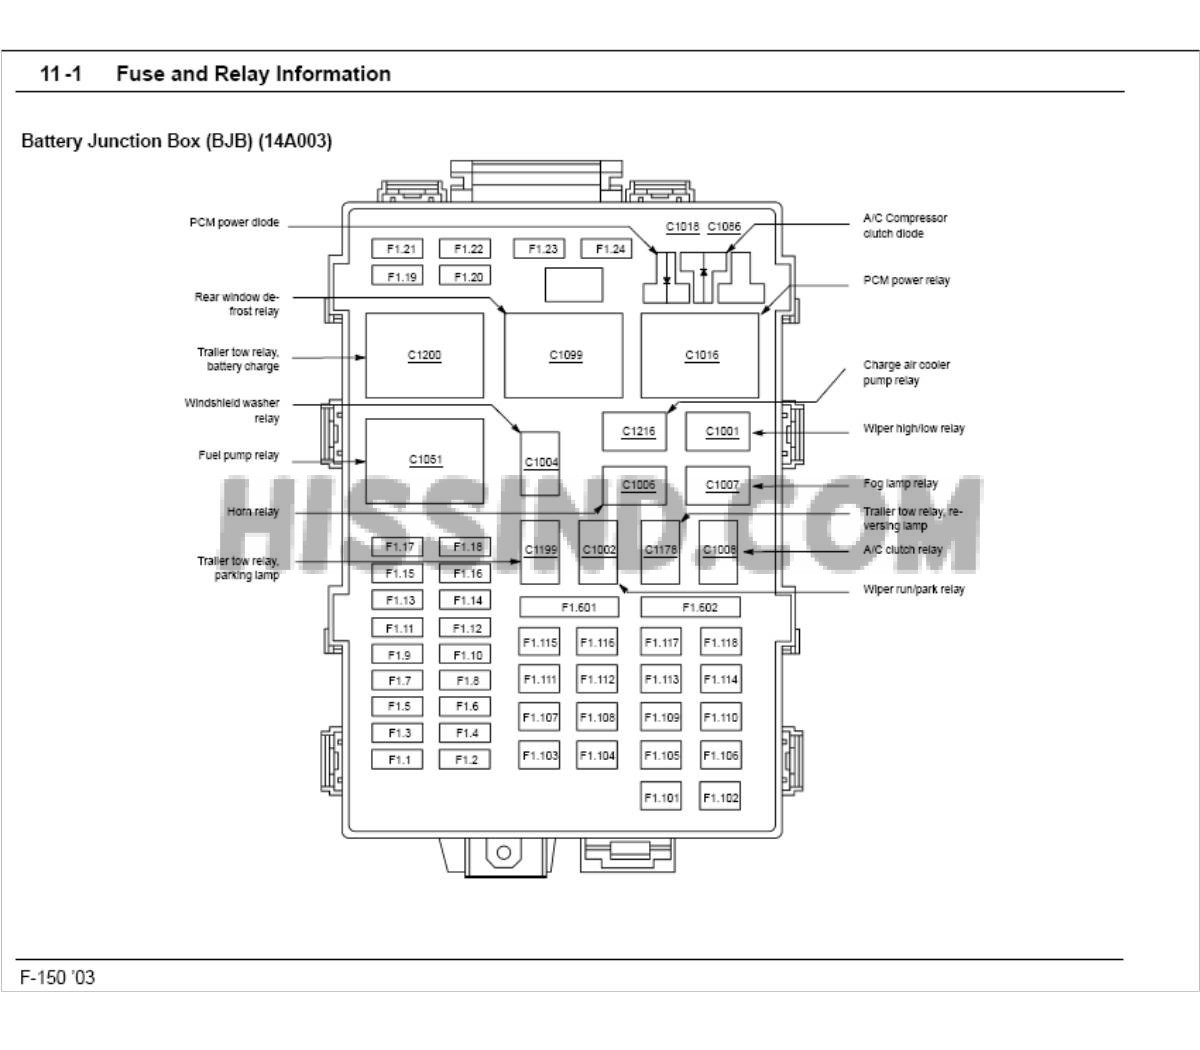 hight resolution of 2000 ford f150 fuse box diagram engine bay